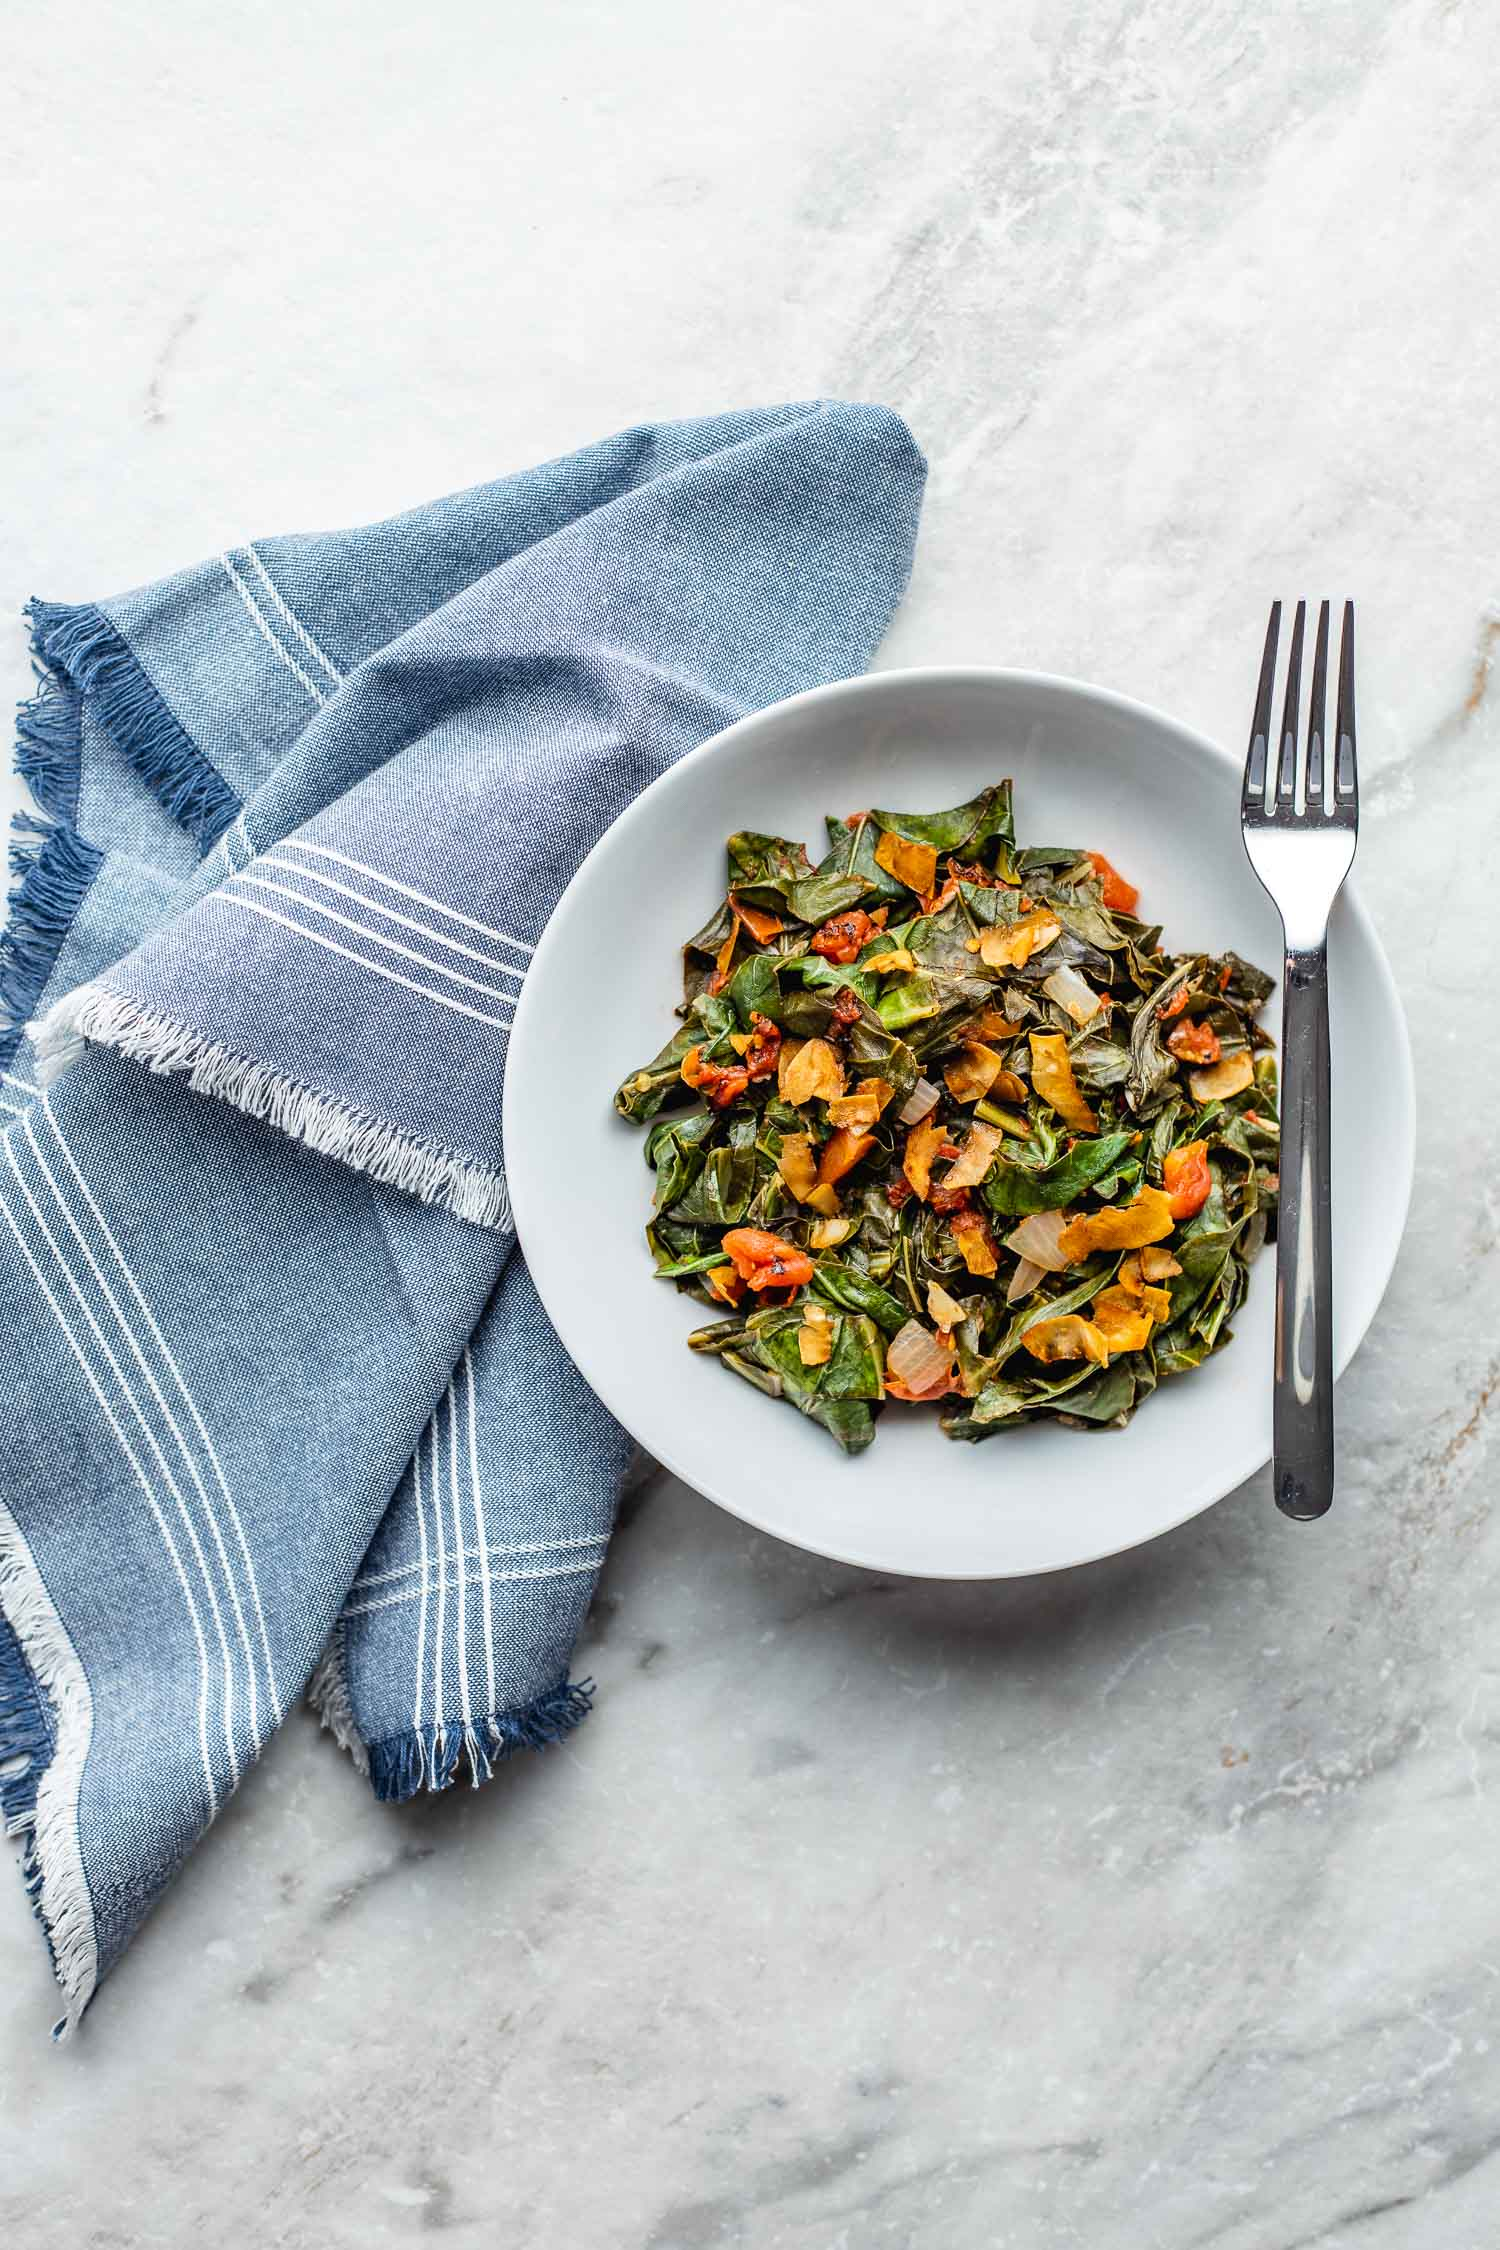 on a marble countertop, sits a blue cloth napkin next to a white bowl of quick collard greens with a fork laid across the top of the bowl